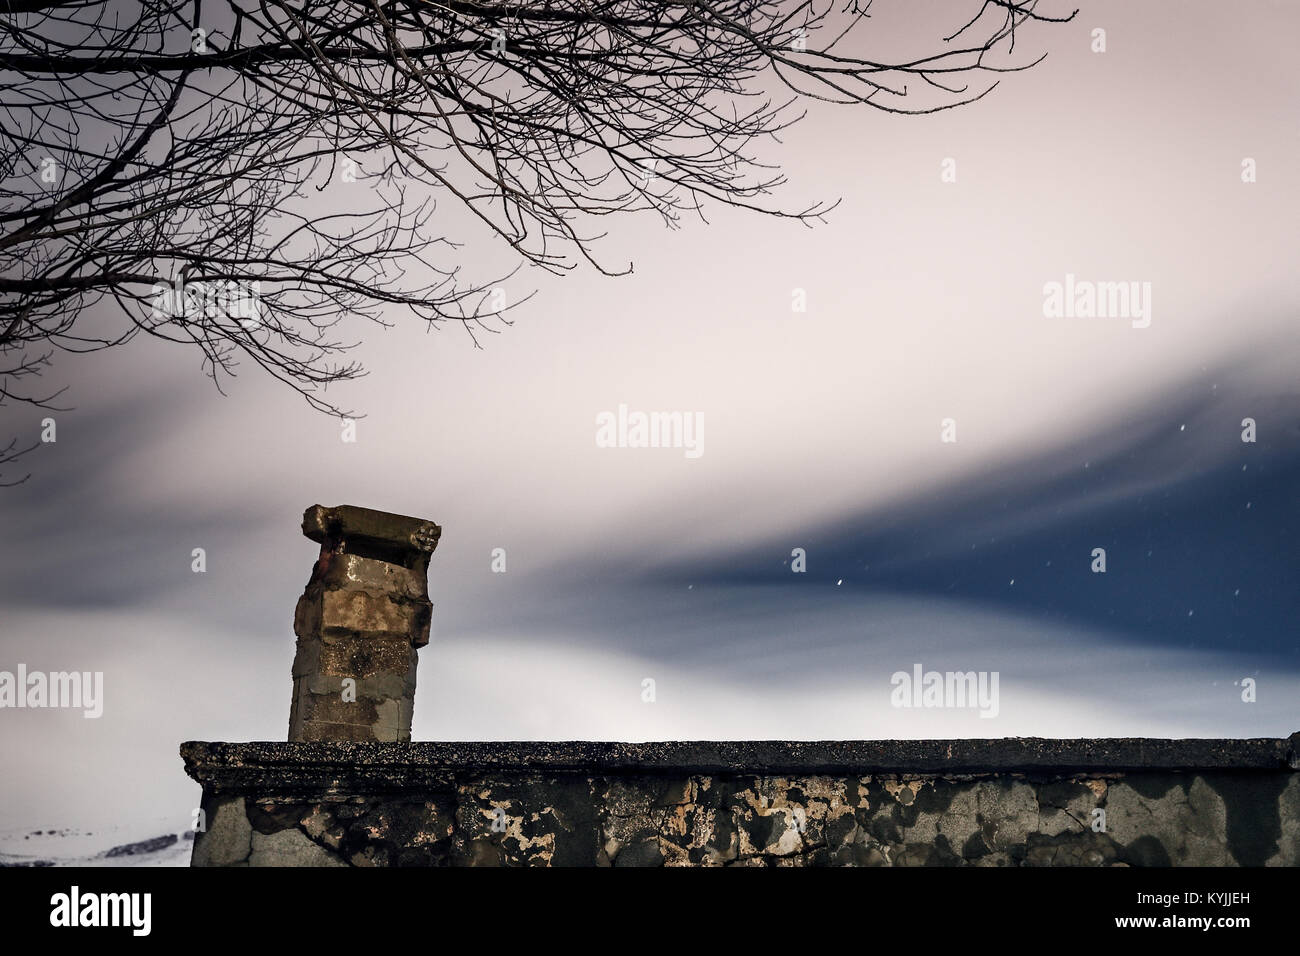 Night starry sky under a veil of white smoky clouds over the roof of an old abandoned house, beautiful nature near Stock Photo